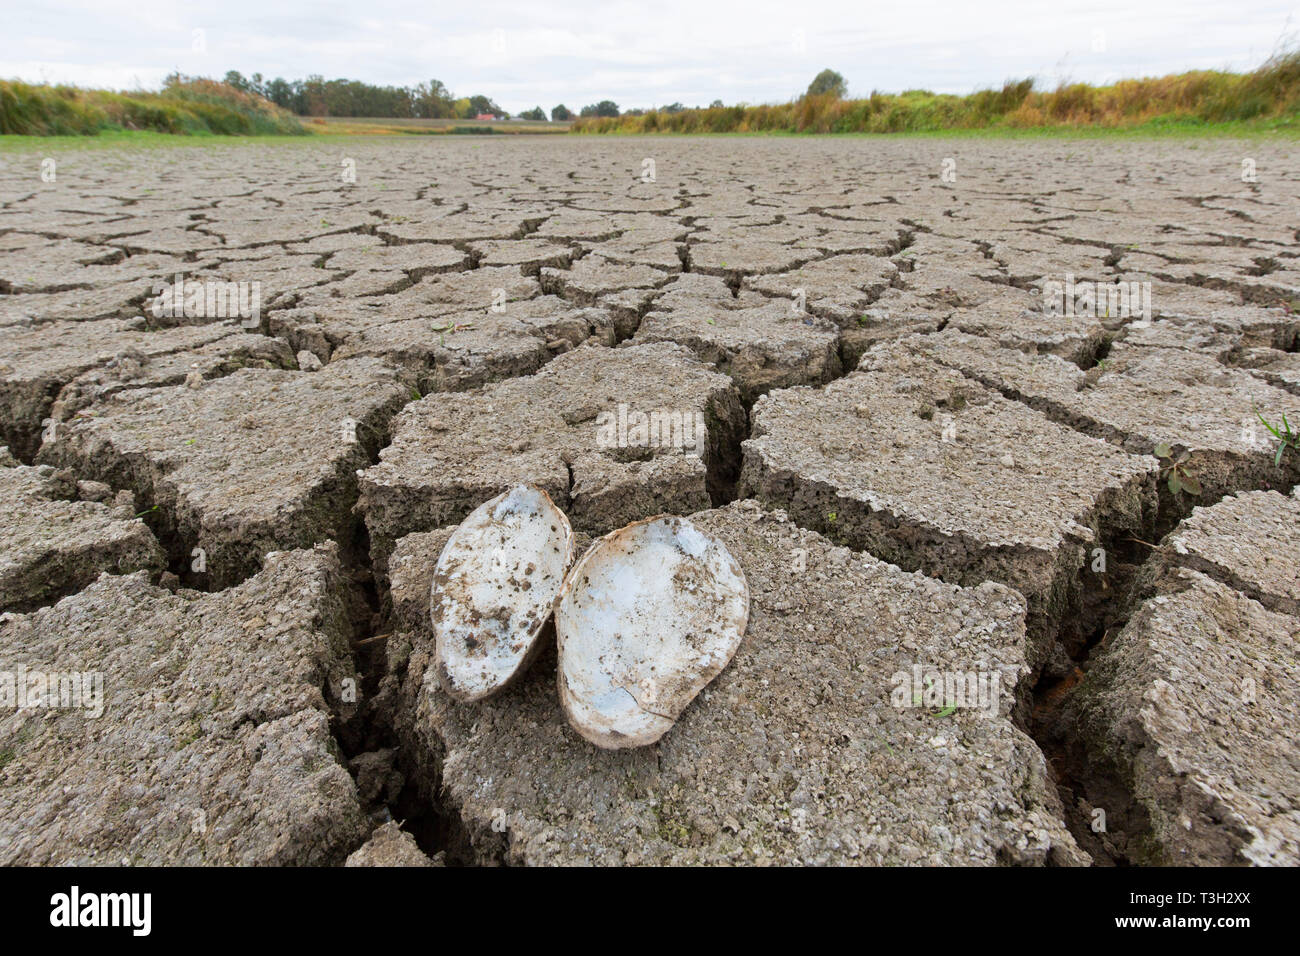 Open swan mussel (Anodonta cygnea) shells in dry cracked clay mud in dried up lake bed / riverbed caused by prolonged drought in summer in hot weather - Stock Image